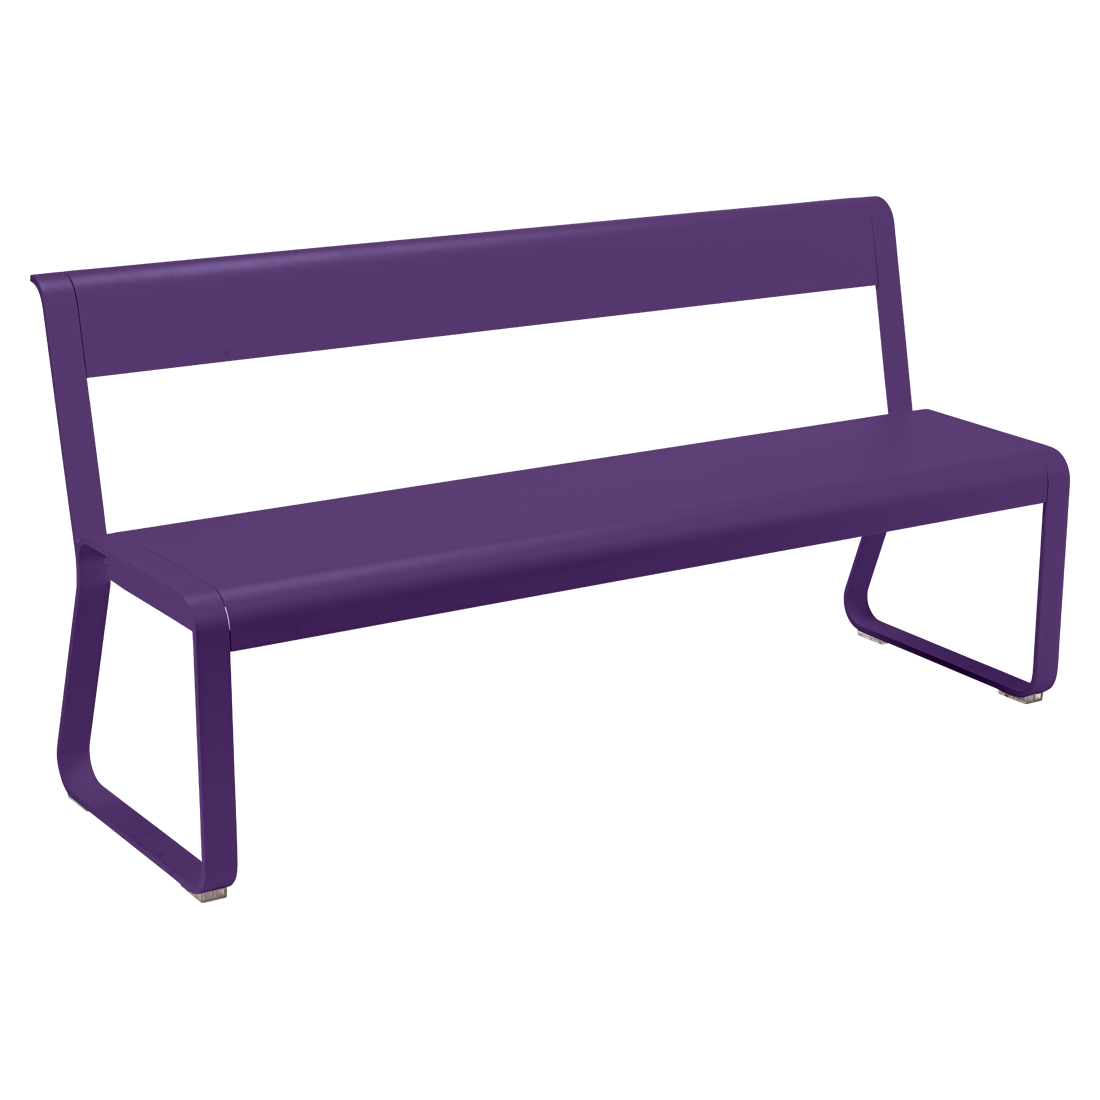 Bellevie Bench Designer Metal Bench Outdoor Furniture